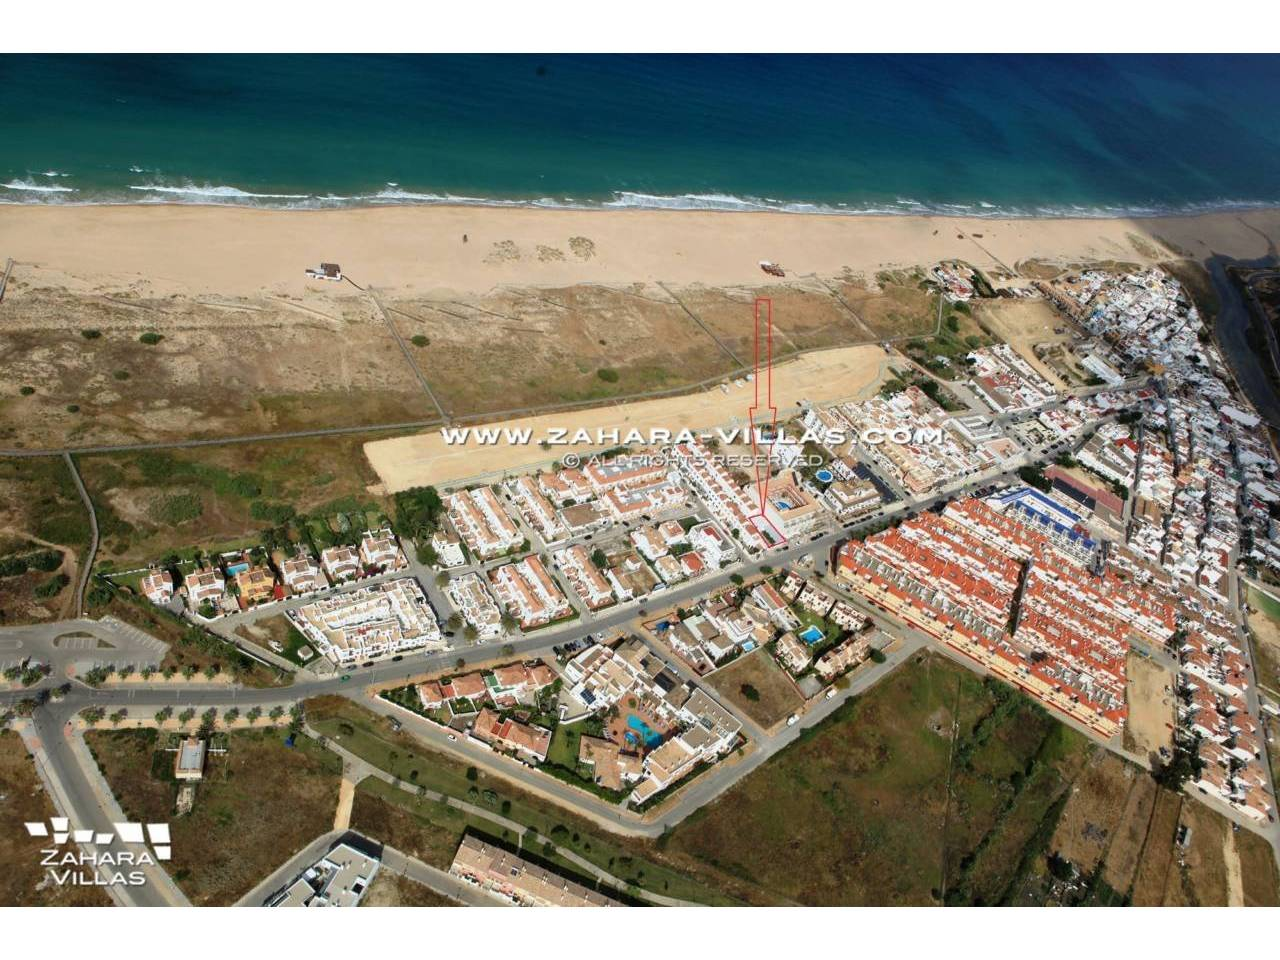 Imagen 1 de House in Avda. Del Pradillo for sale in the town of Zahara de los Atunes